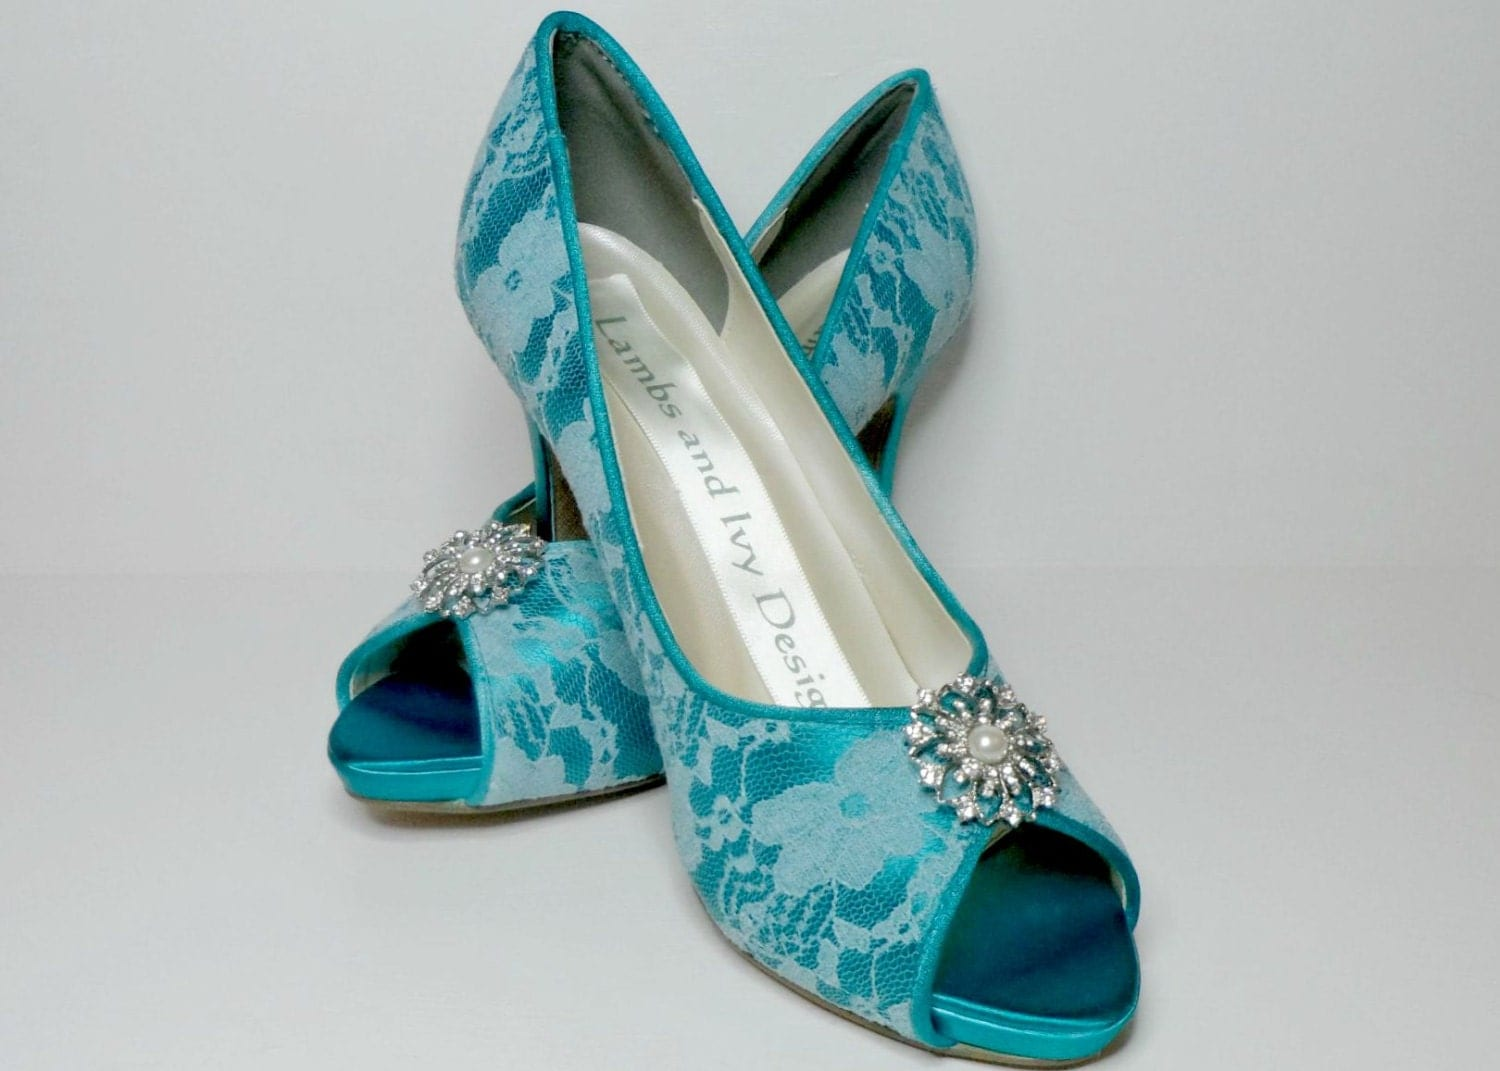 Teal Wedding Shoes 022 - Teal Wedding Shoes